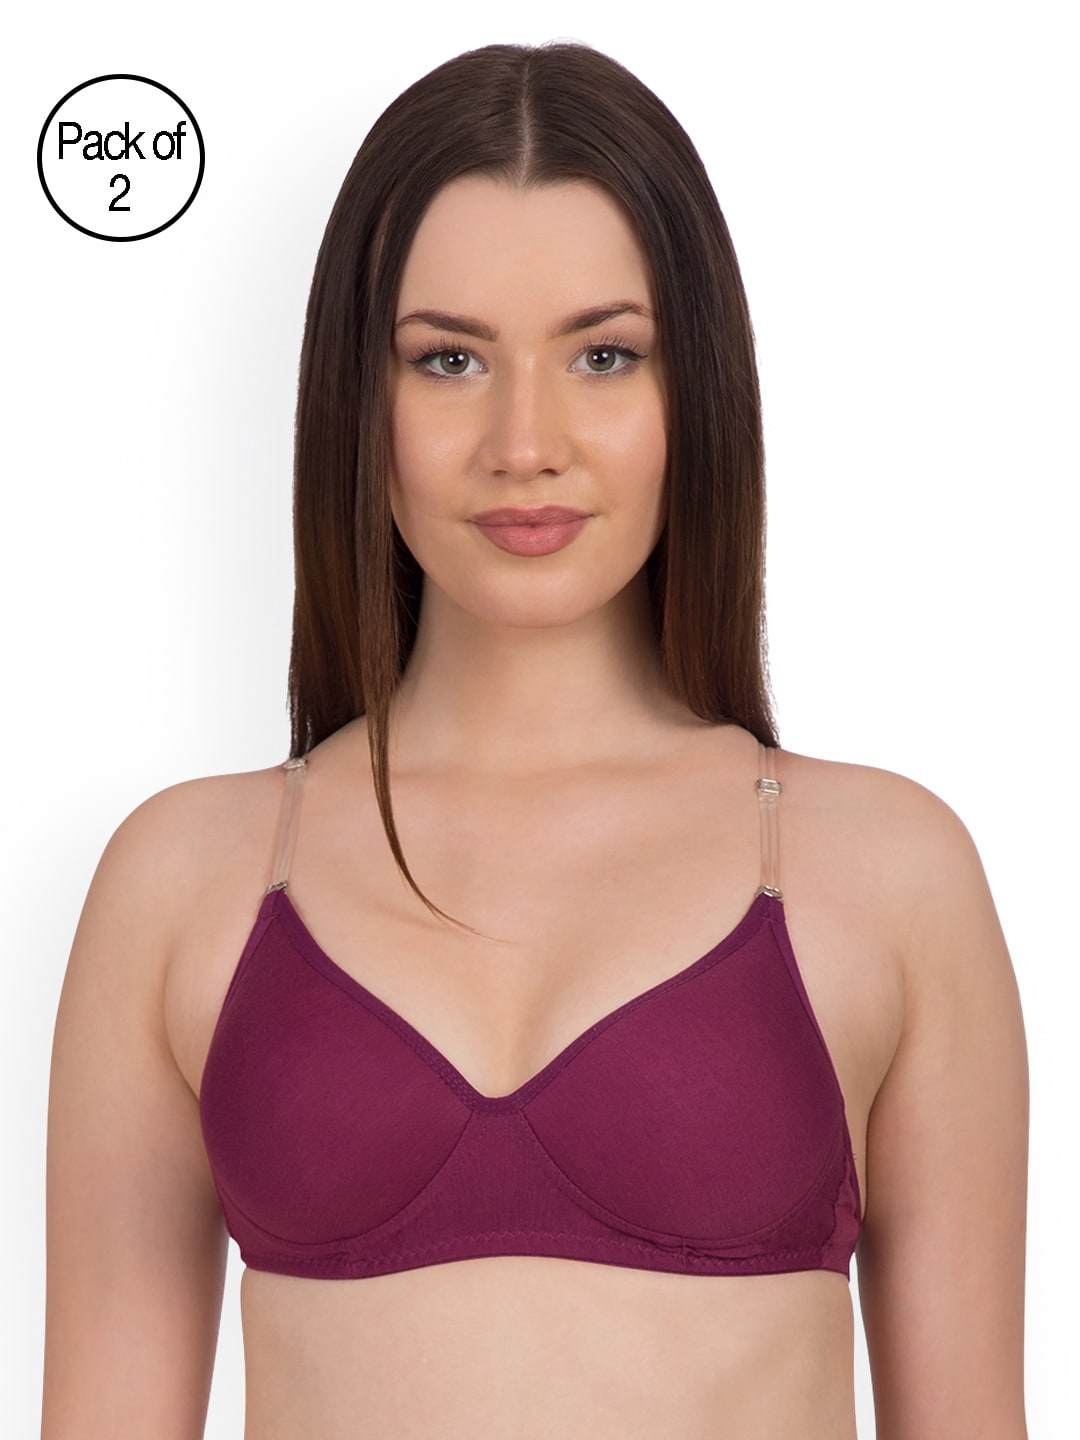 cd96bc8e140 Boobs   Bloomers Bra - Buy Boobs   Bloomers Bra Online in India